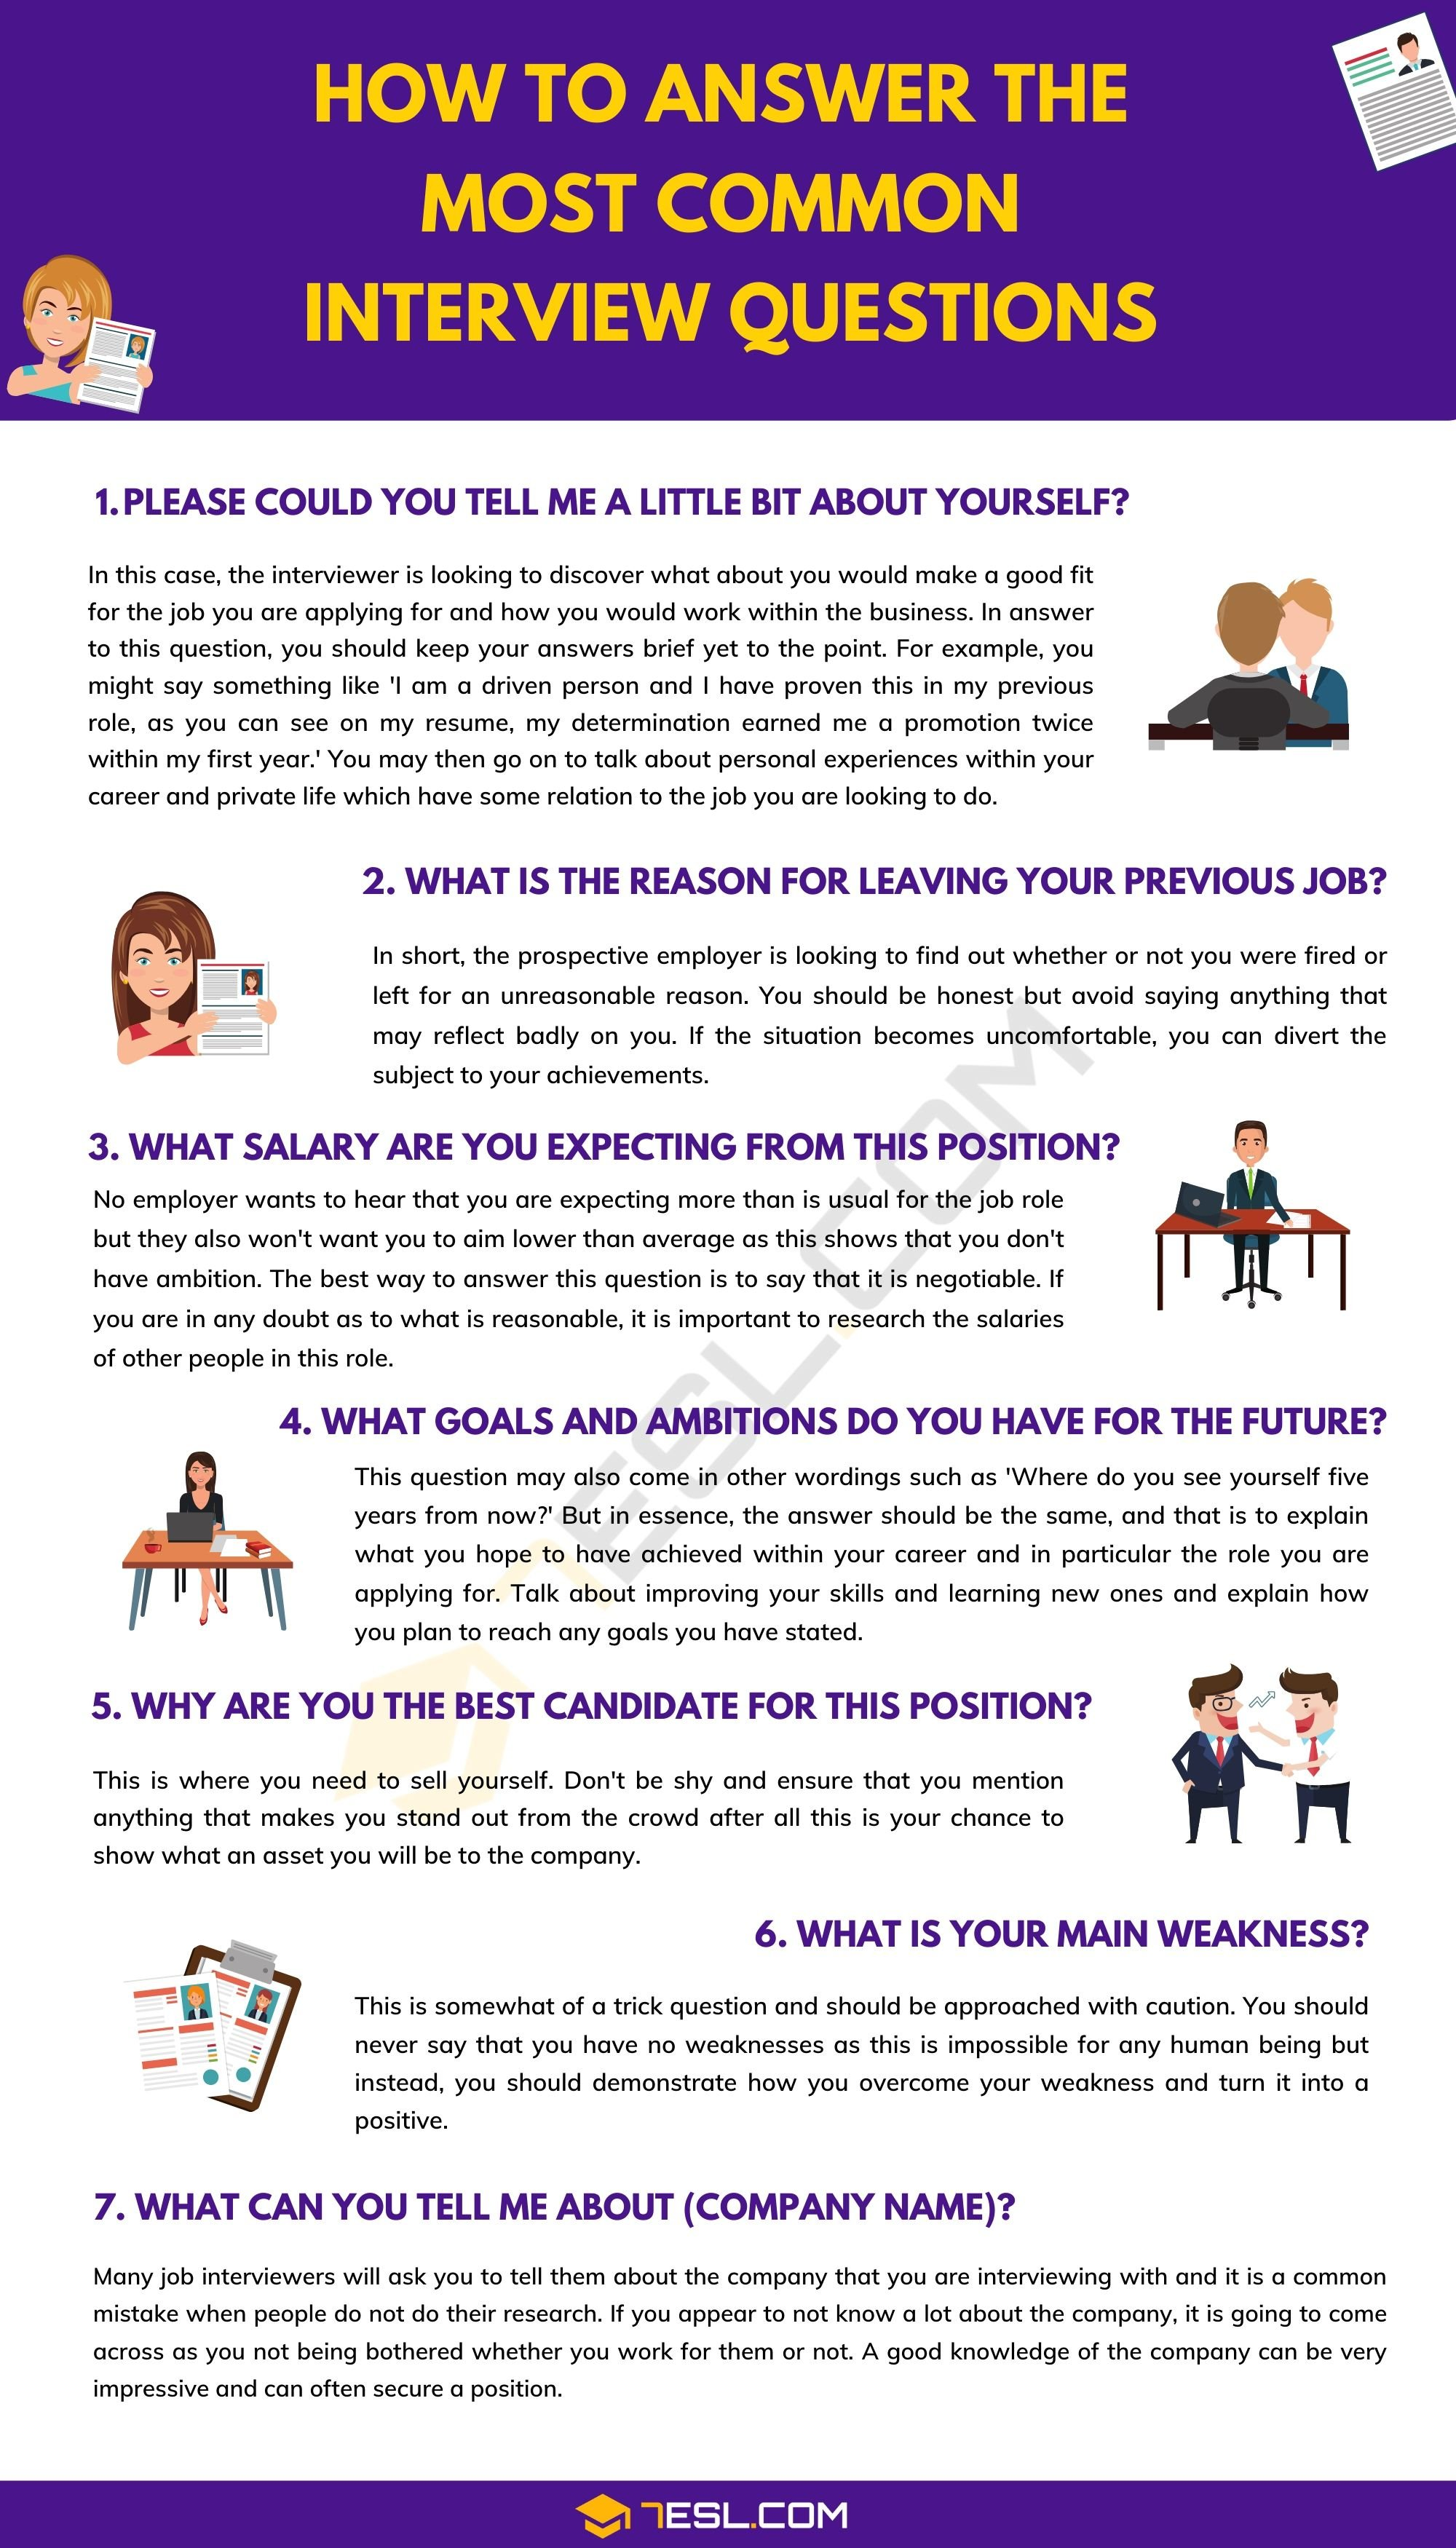 How To Answer The Most Common Interview Questions With ...